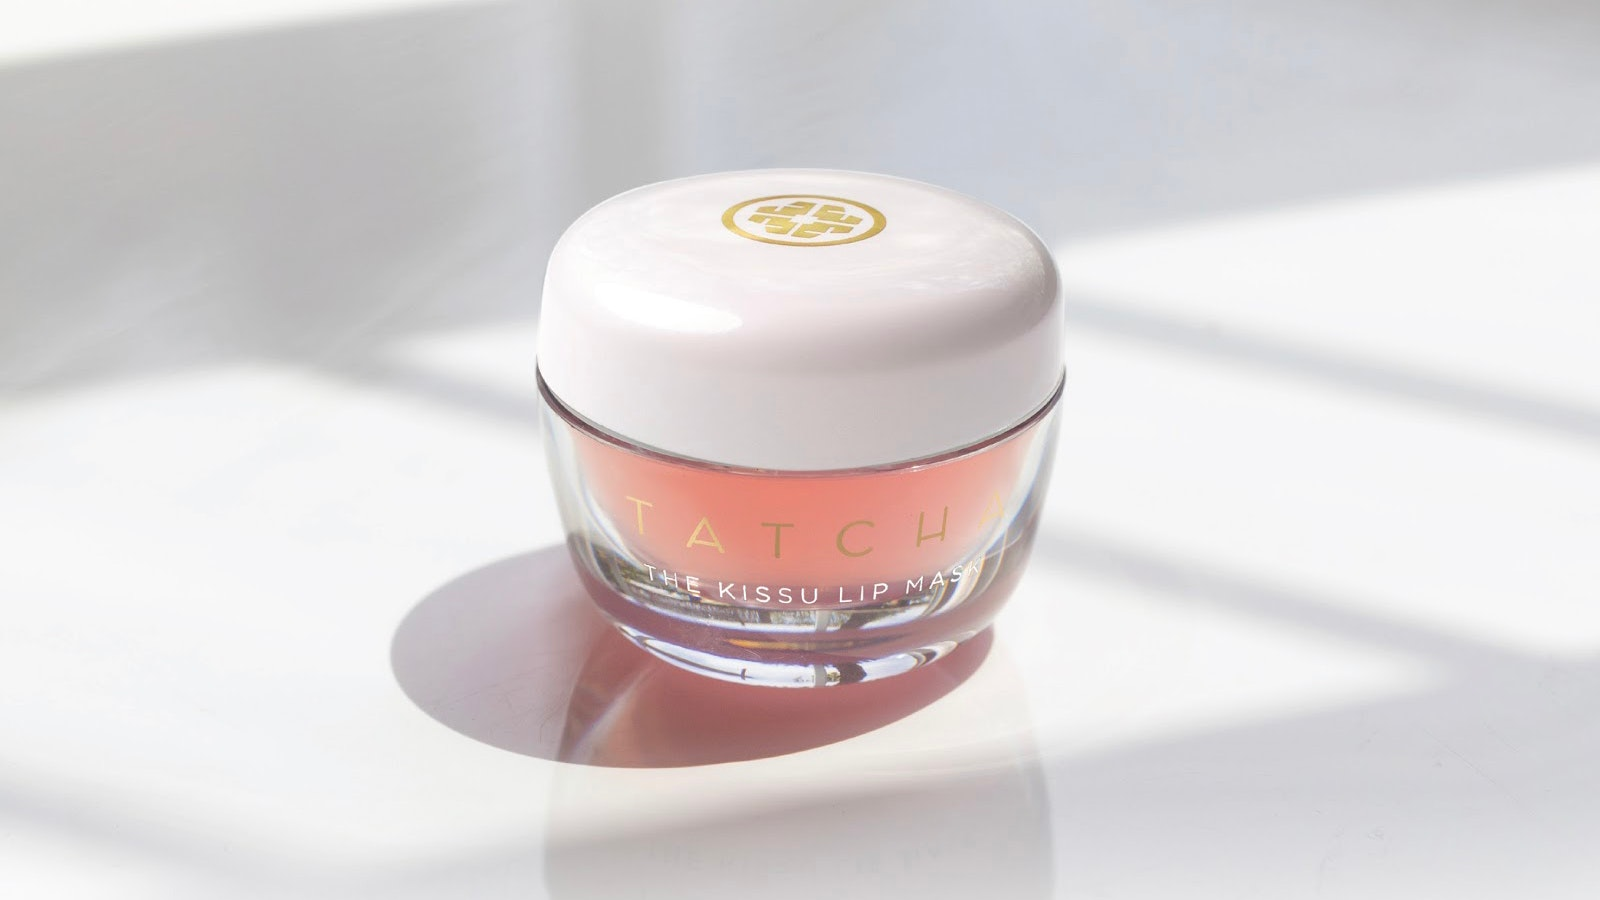 Tatcha Jelly Lip Mask